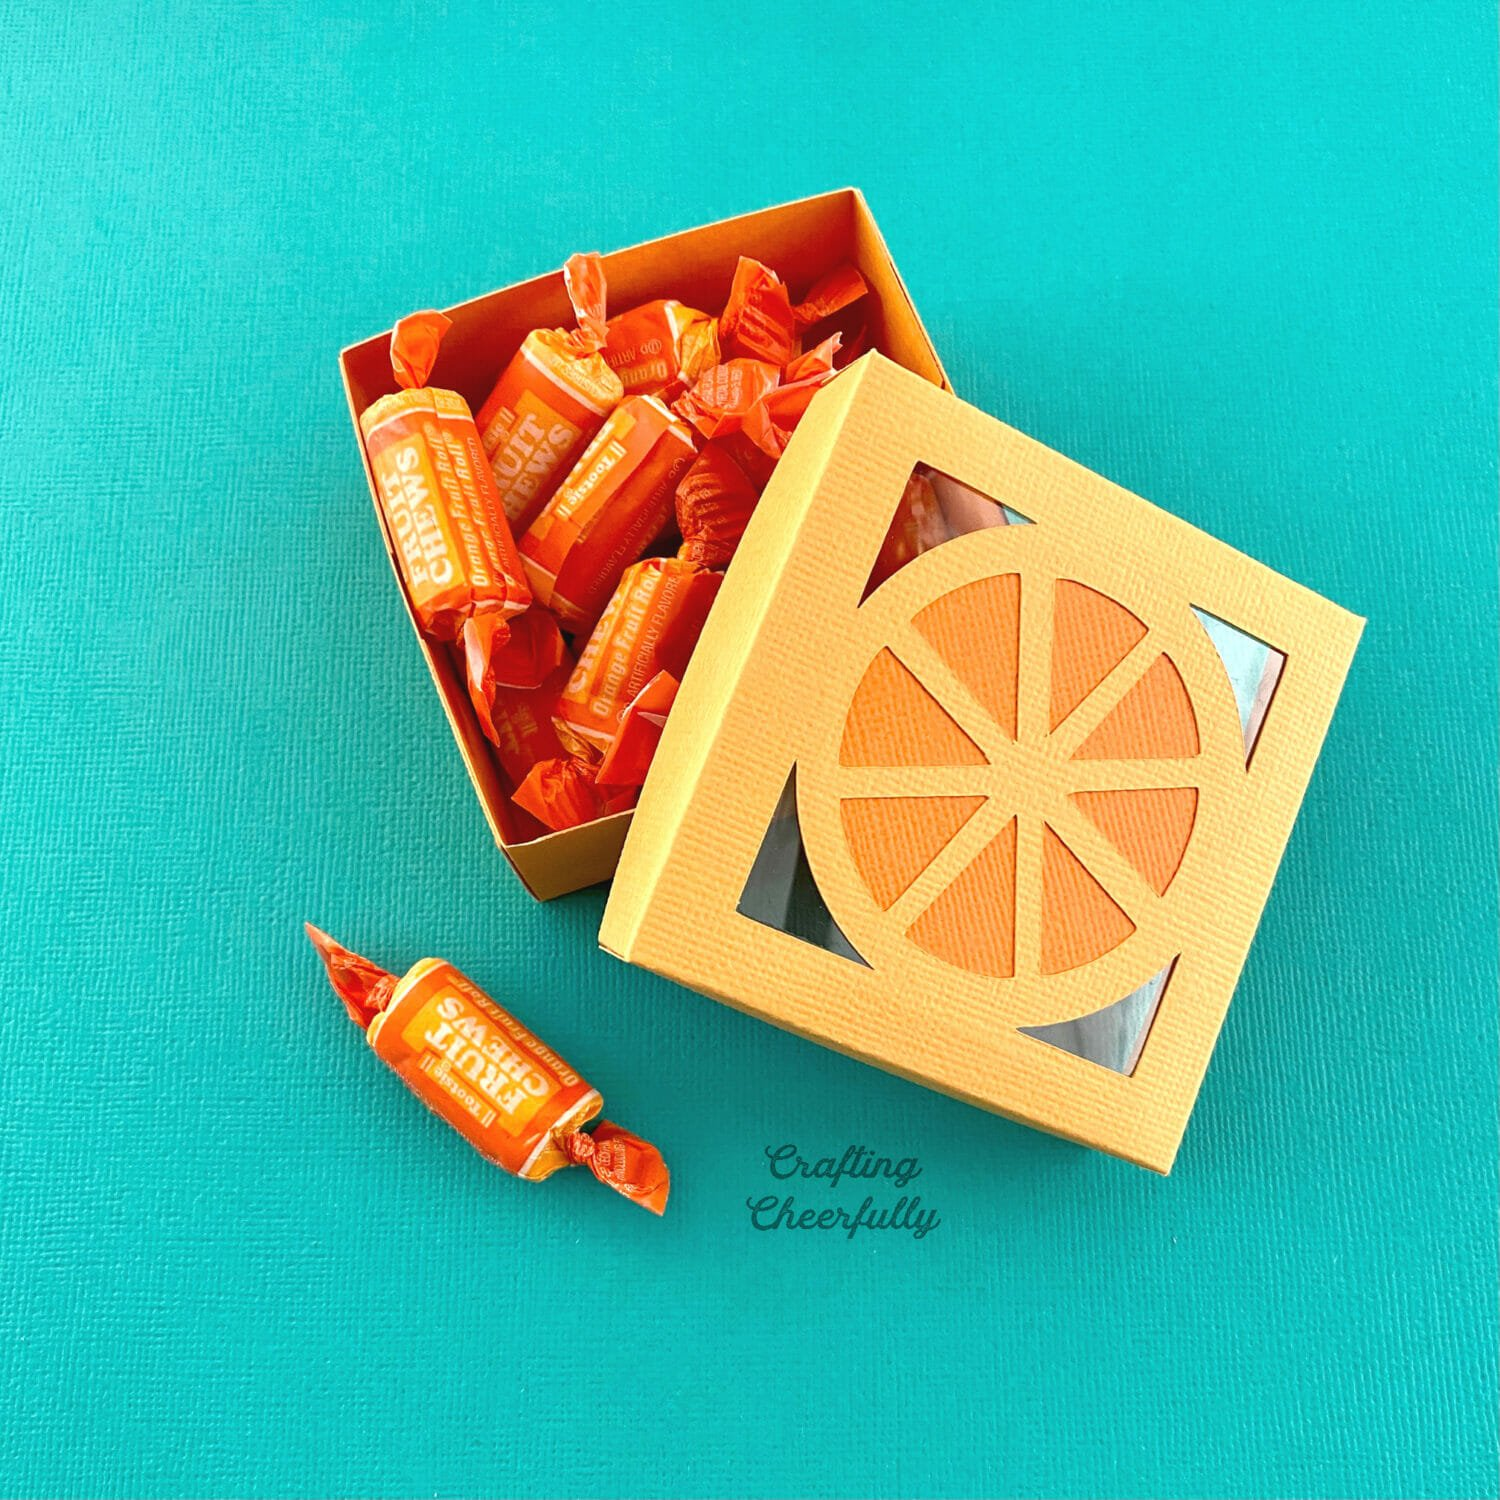 Orange tutti frutti box filled with orange candy on a turquoise background.